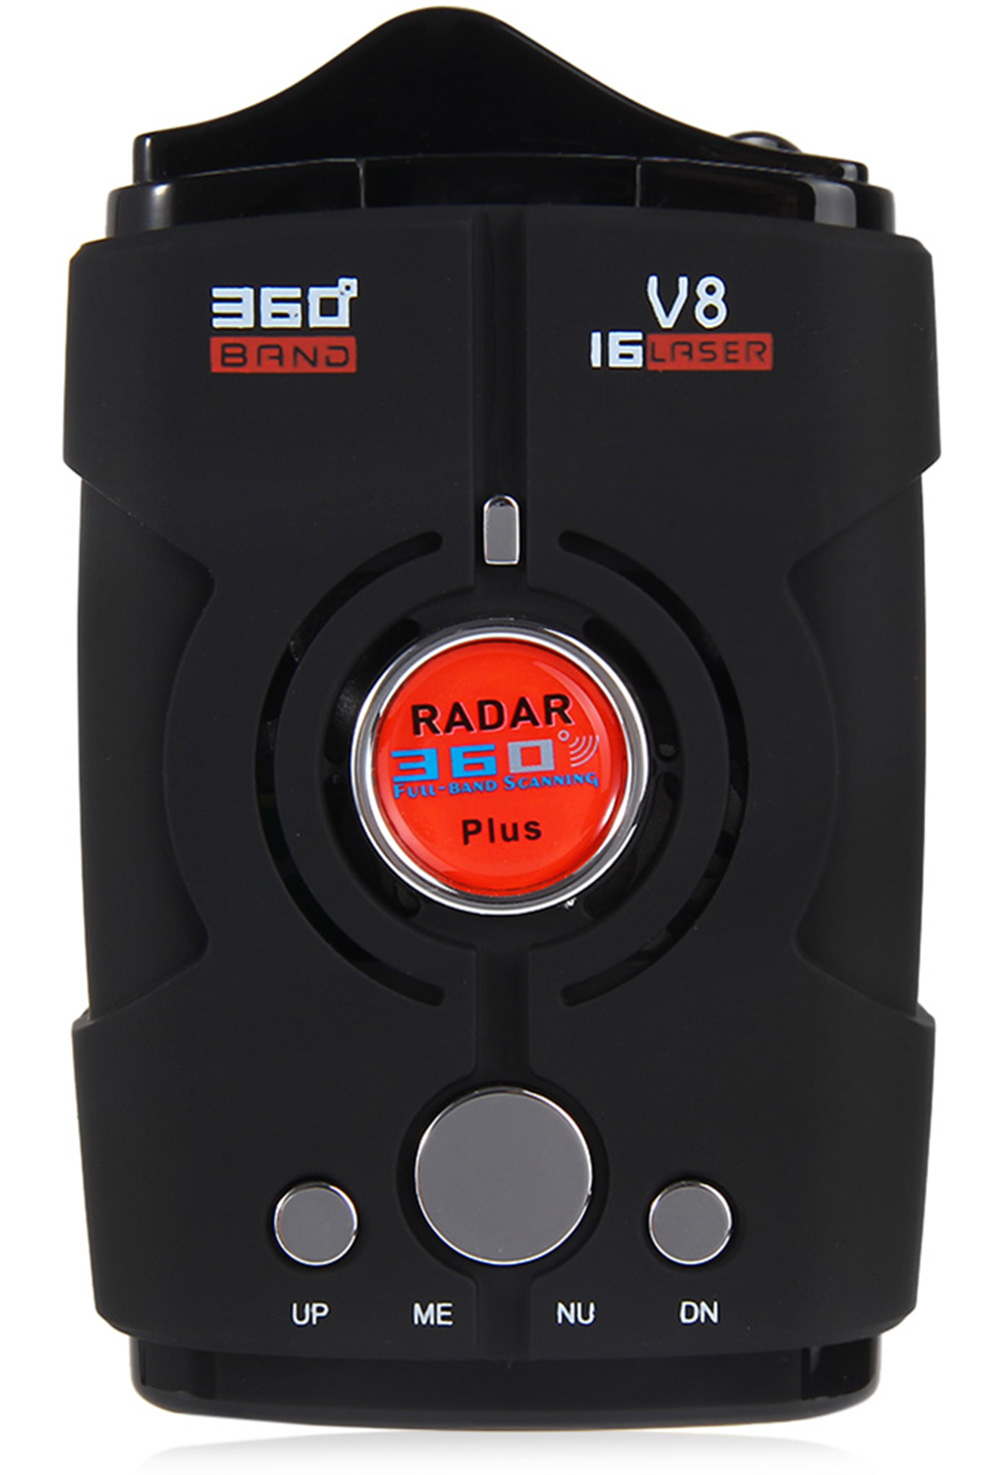 Car Trucker Speed V8 Radar Detector Voice Alert Warning 16 Band Auto 360 Degrees